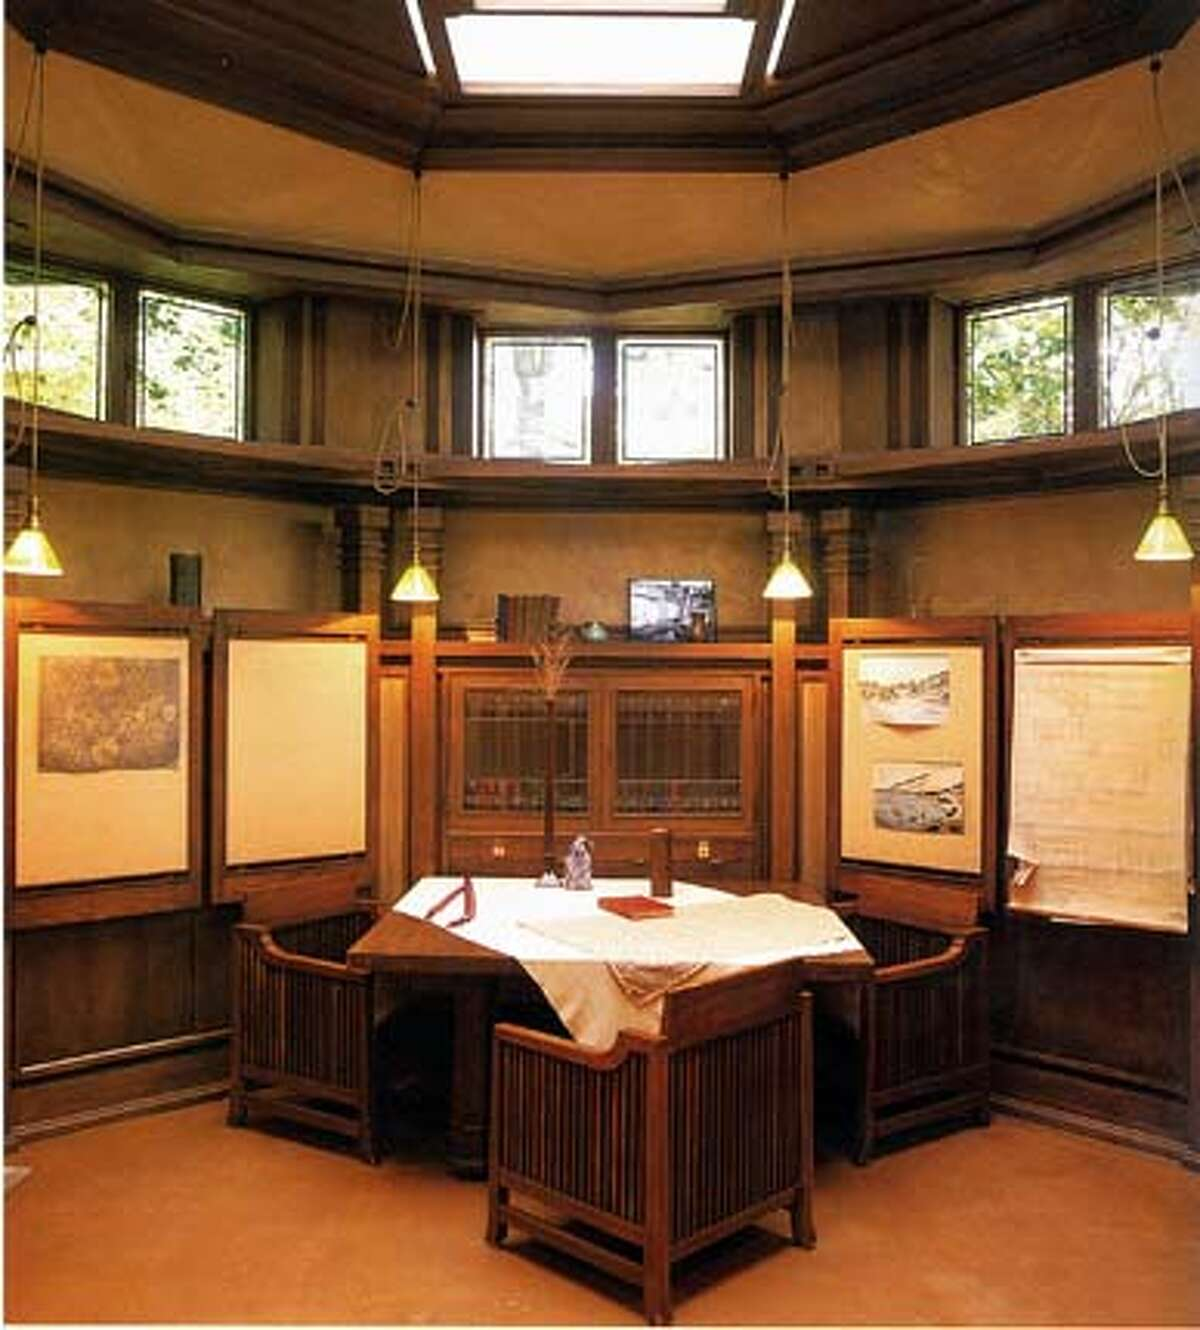 Frank Lloyd Wright's octagonal library in his home in Oakpark, Ill. BookReview#BookReview#Chronicle#11-14-2004#ALL#2star#e3#0422459230 BookReview#BookReview#Chronicle#11-14-2004#ALL#2star#e3#0422459230